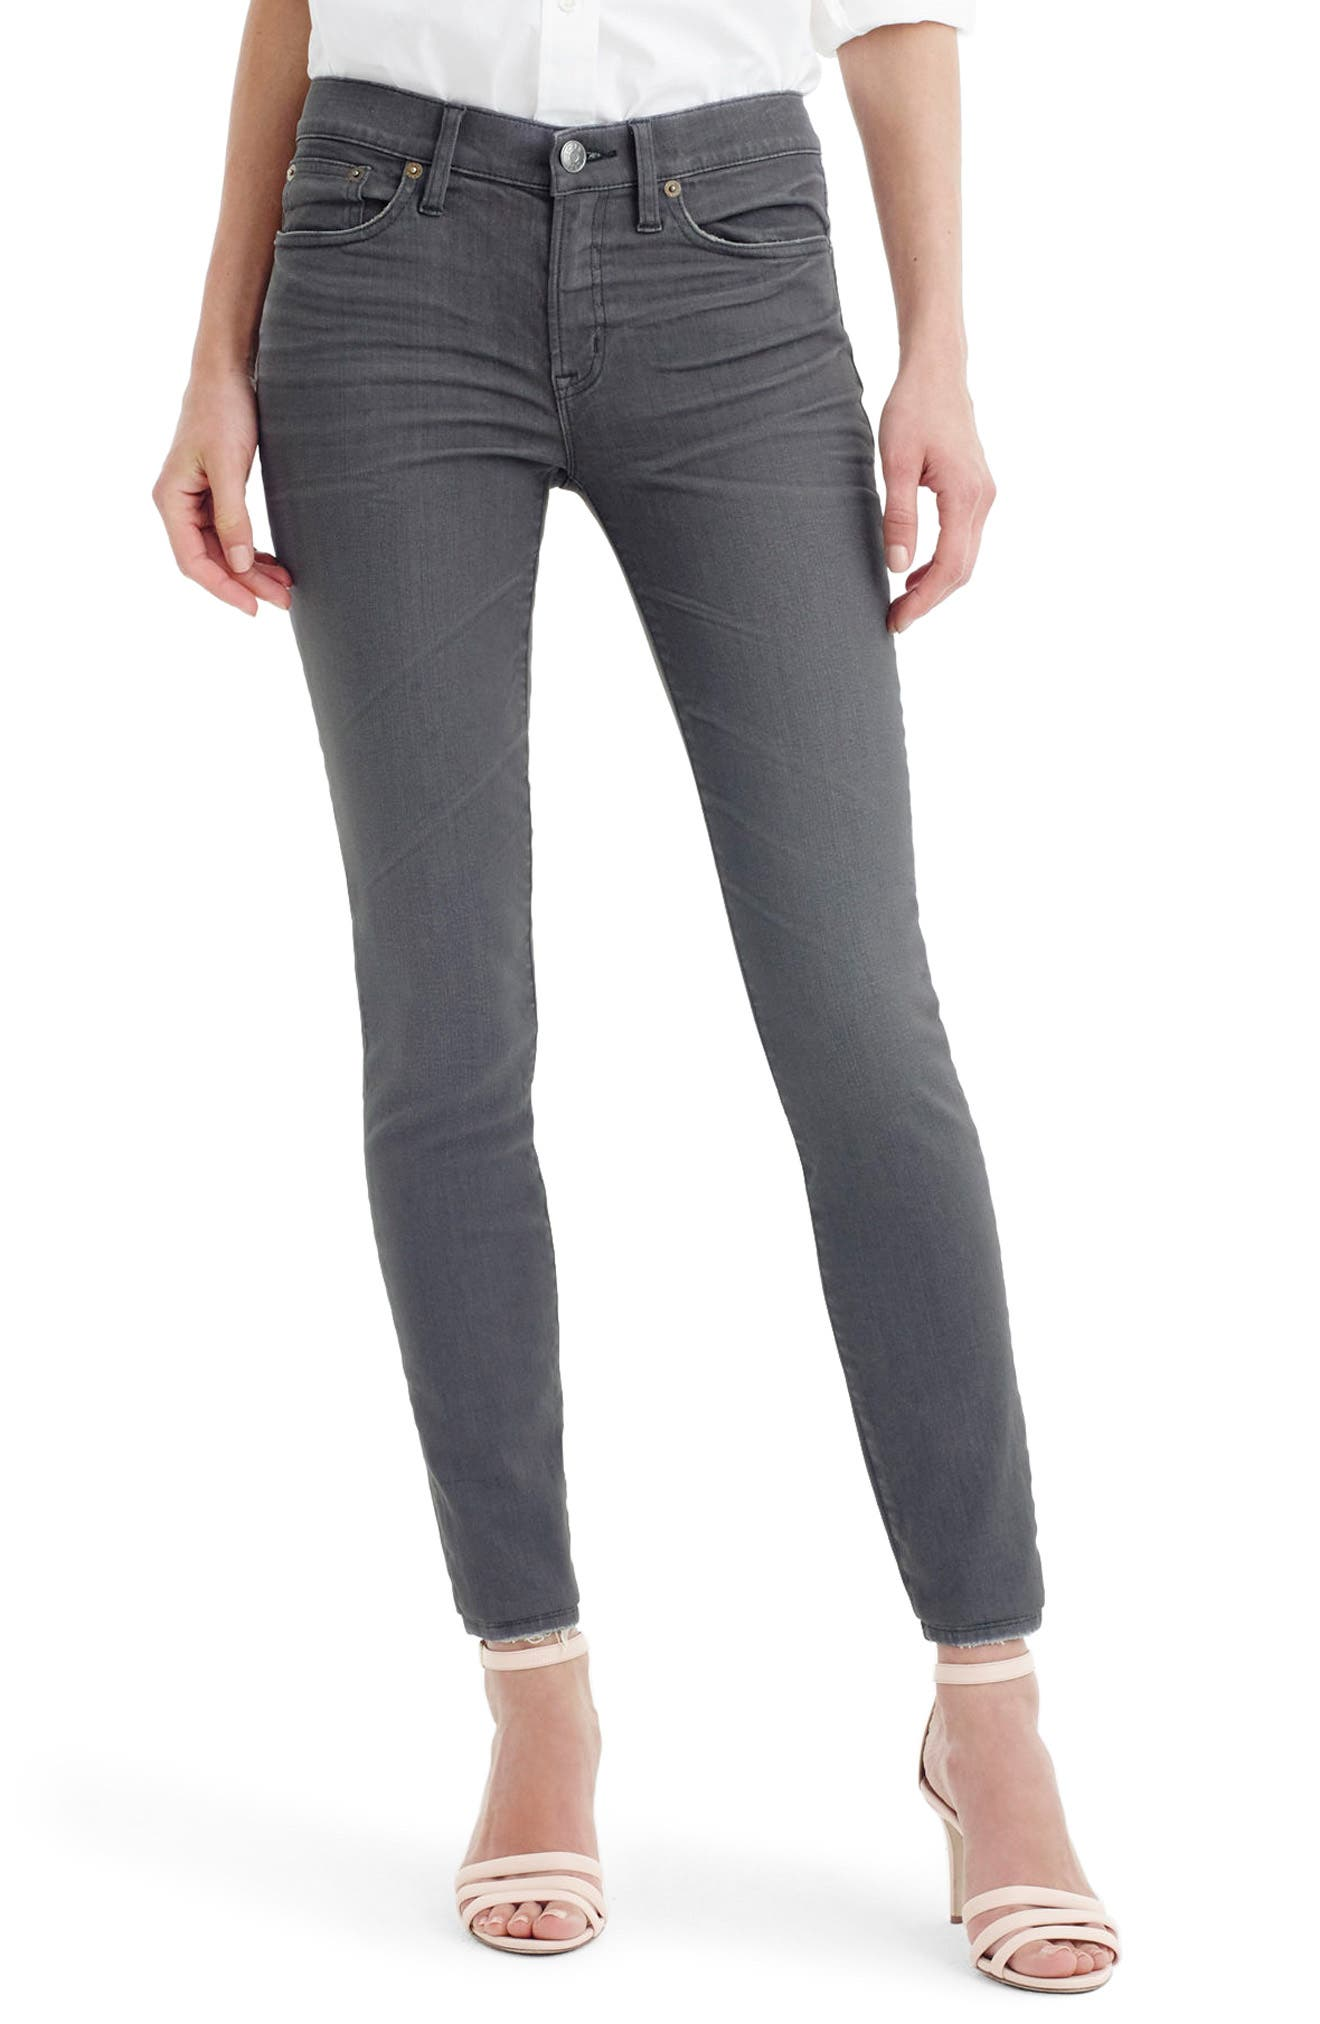 Toothpick Jeans,                         Main,                         color, 020